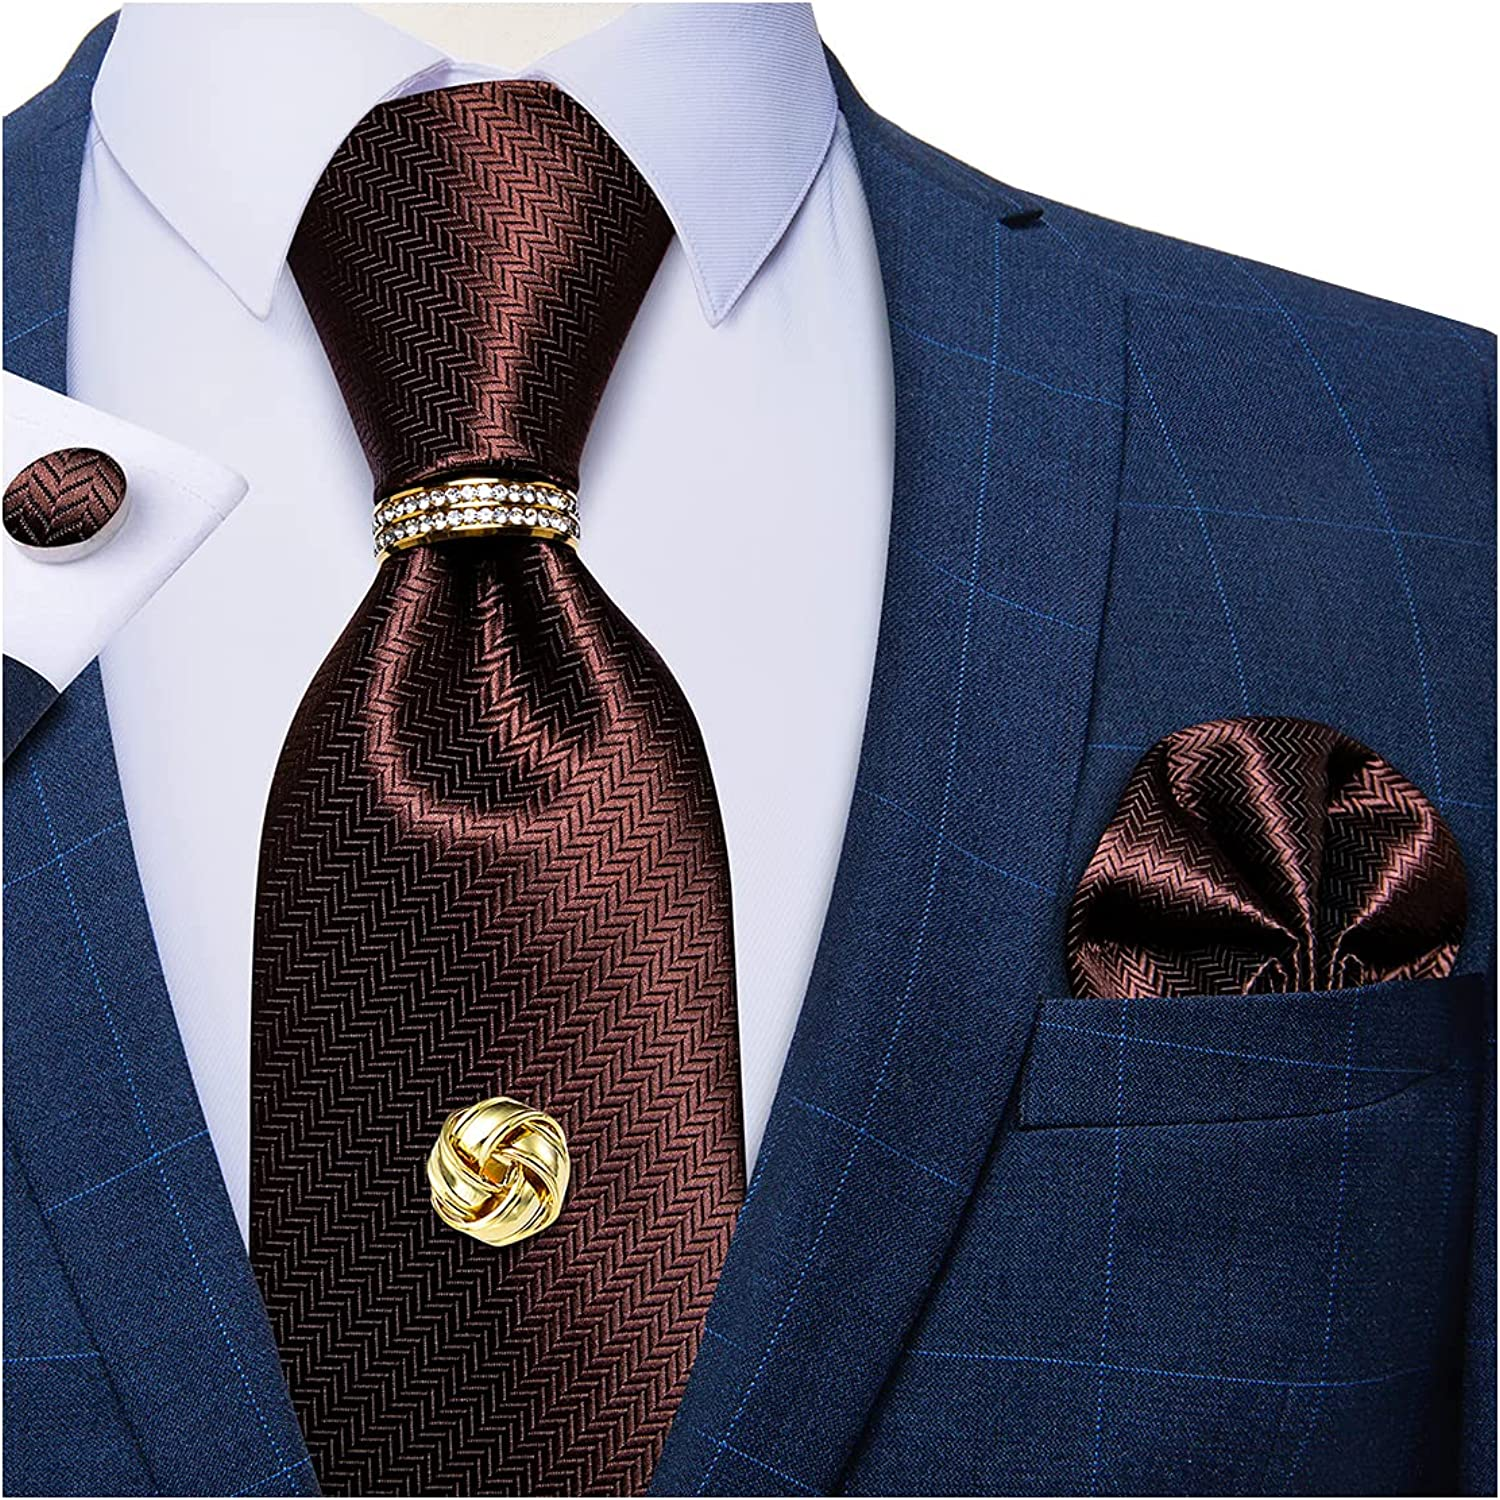 DiBanGu Mens Silk Solid Necktie, Gold Tie Tack with Chain, Gold Tie Ring, Pocket Square, Cuff Links Gift Box Set Formal